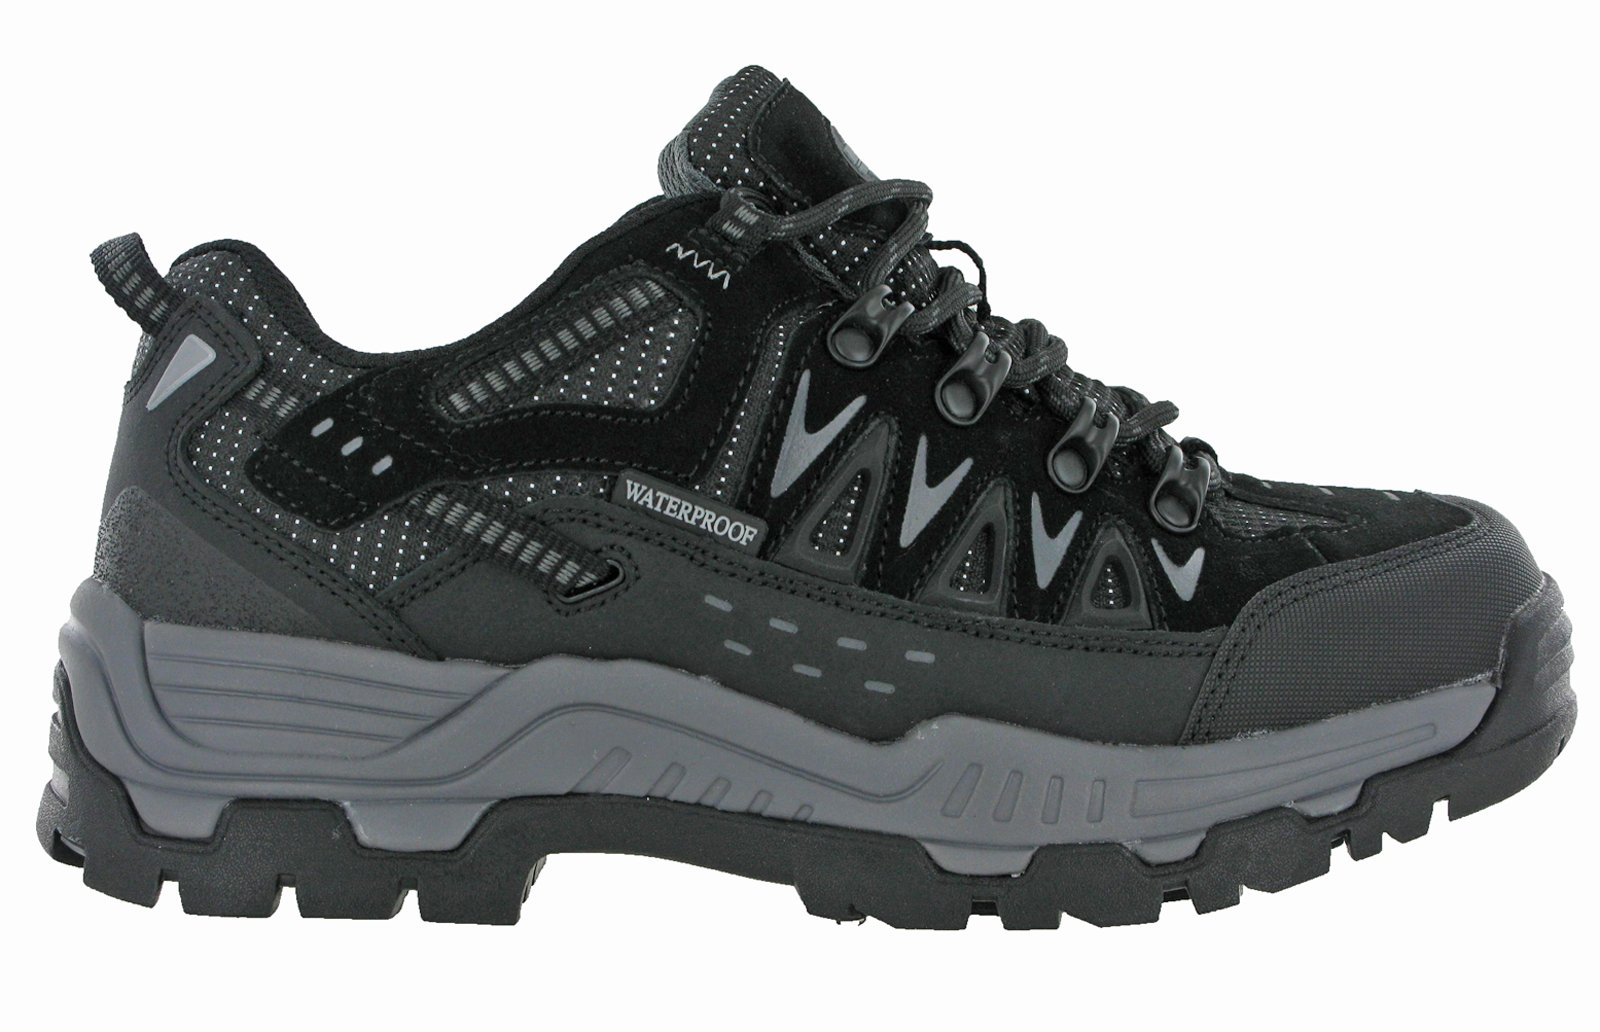 Northwest Waterproof Hiking Shoes Walking Piers Low Cut Trainers 2